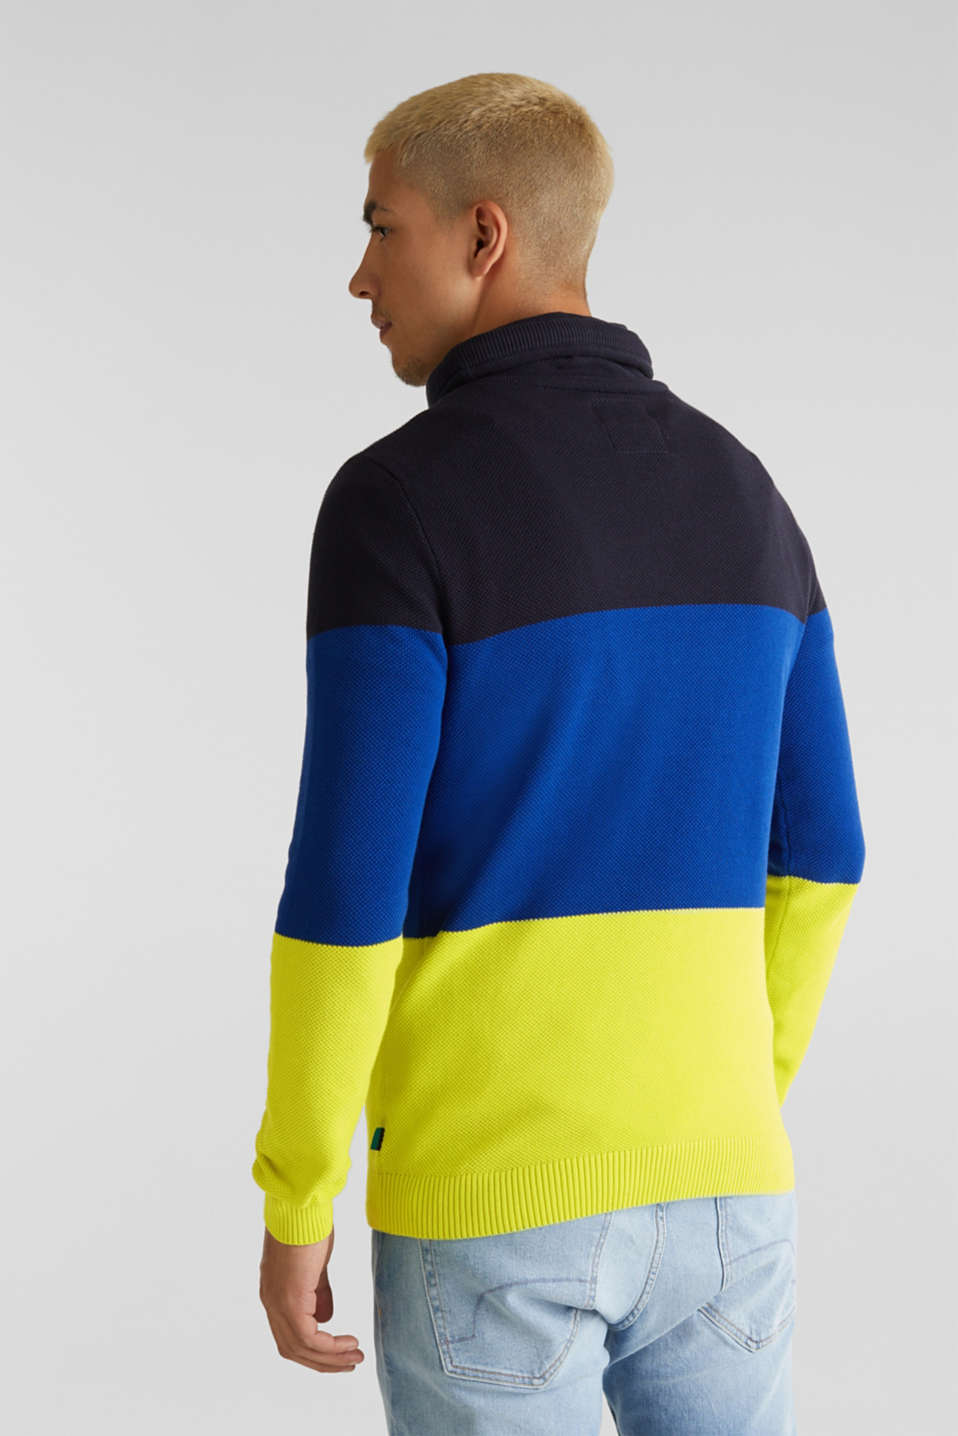 NEON jumper with a drawstring collar, 100% cotton, NAVY 3, detail image number 3